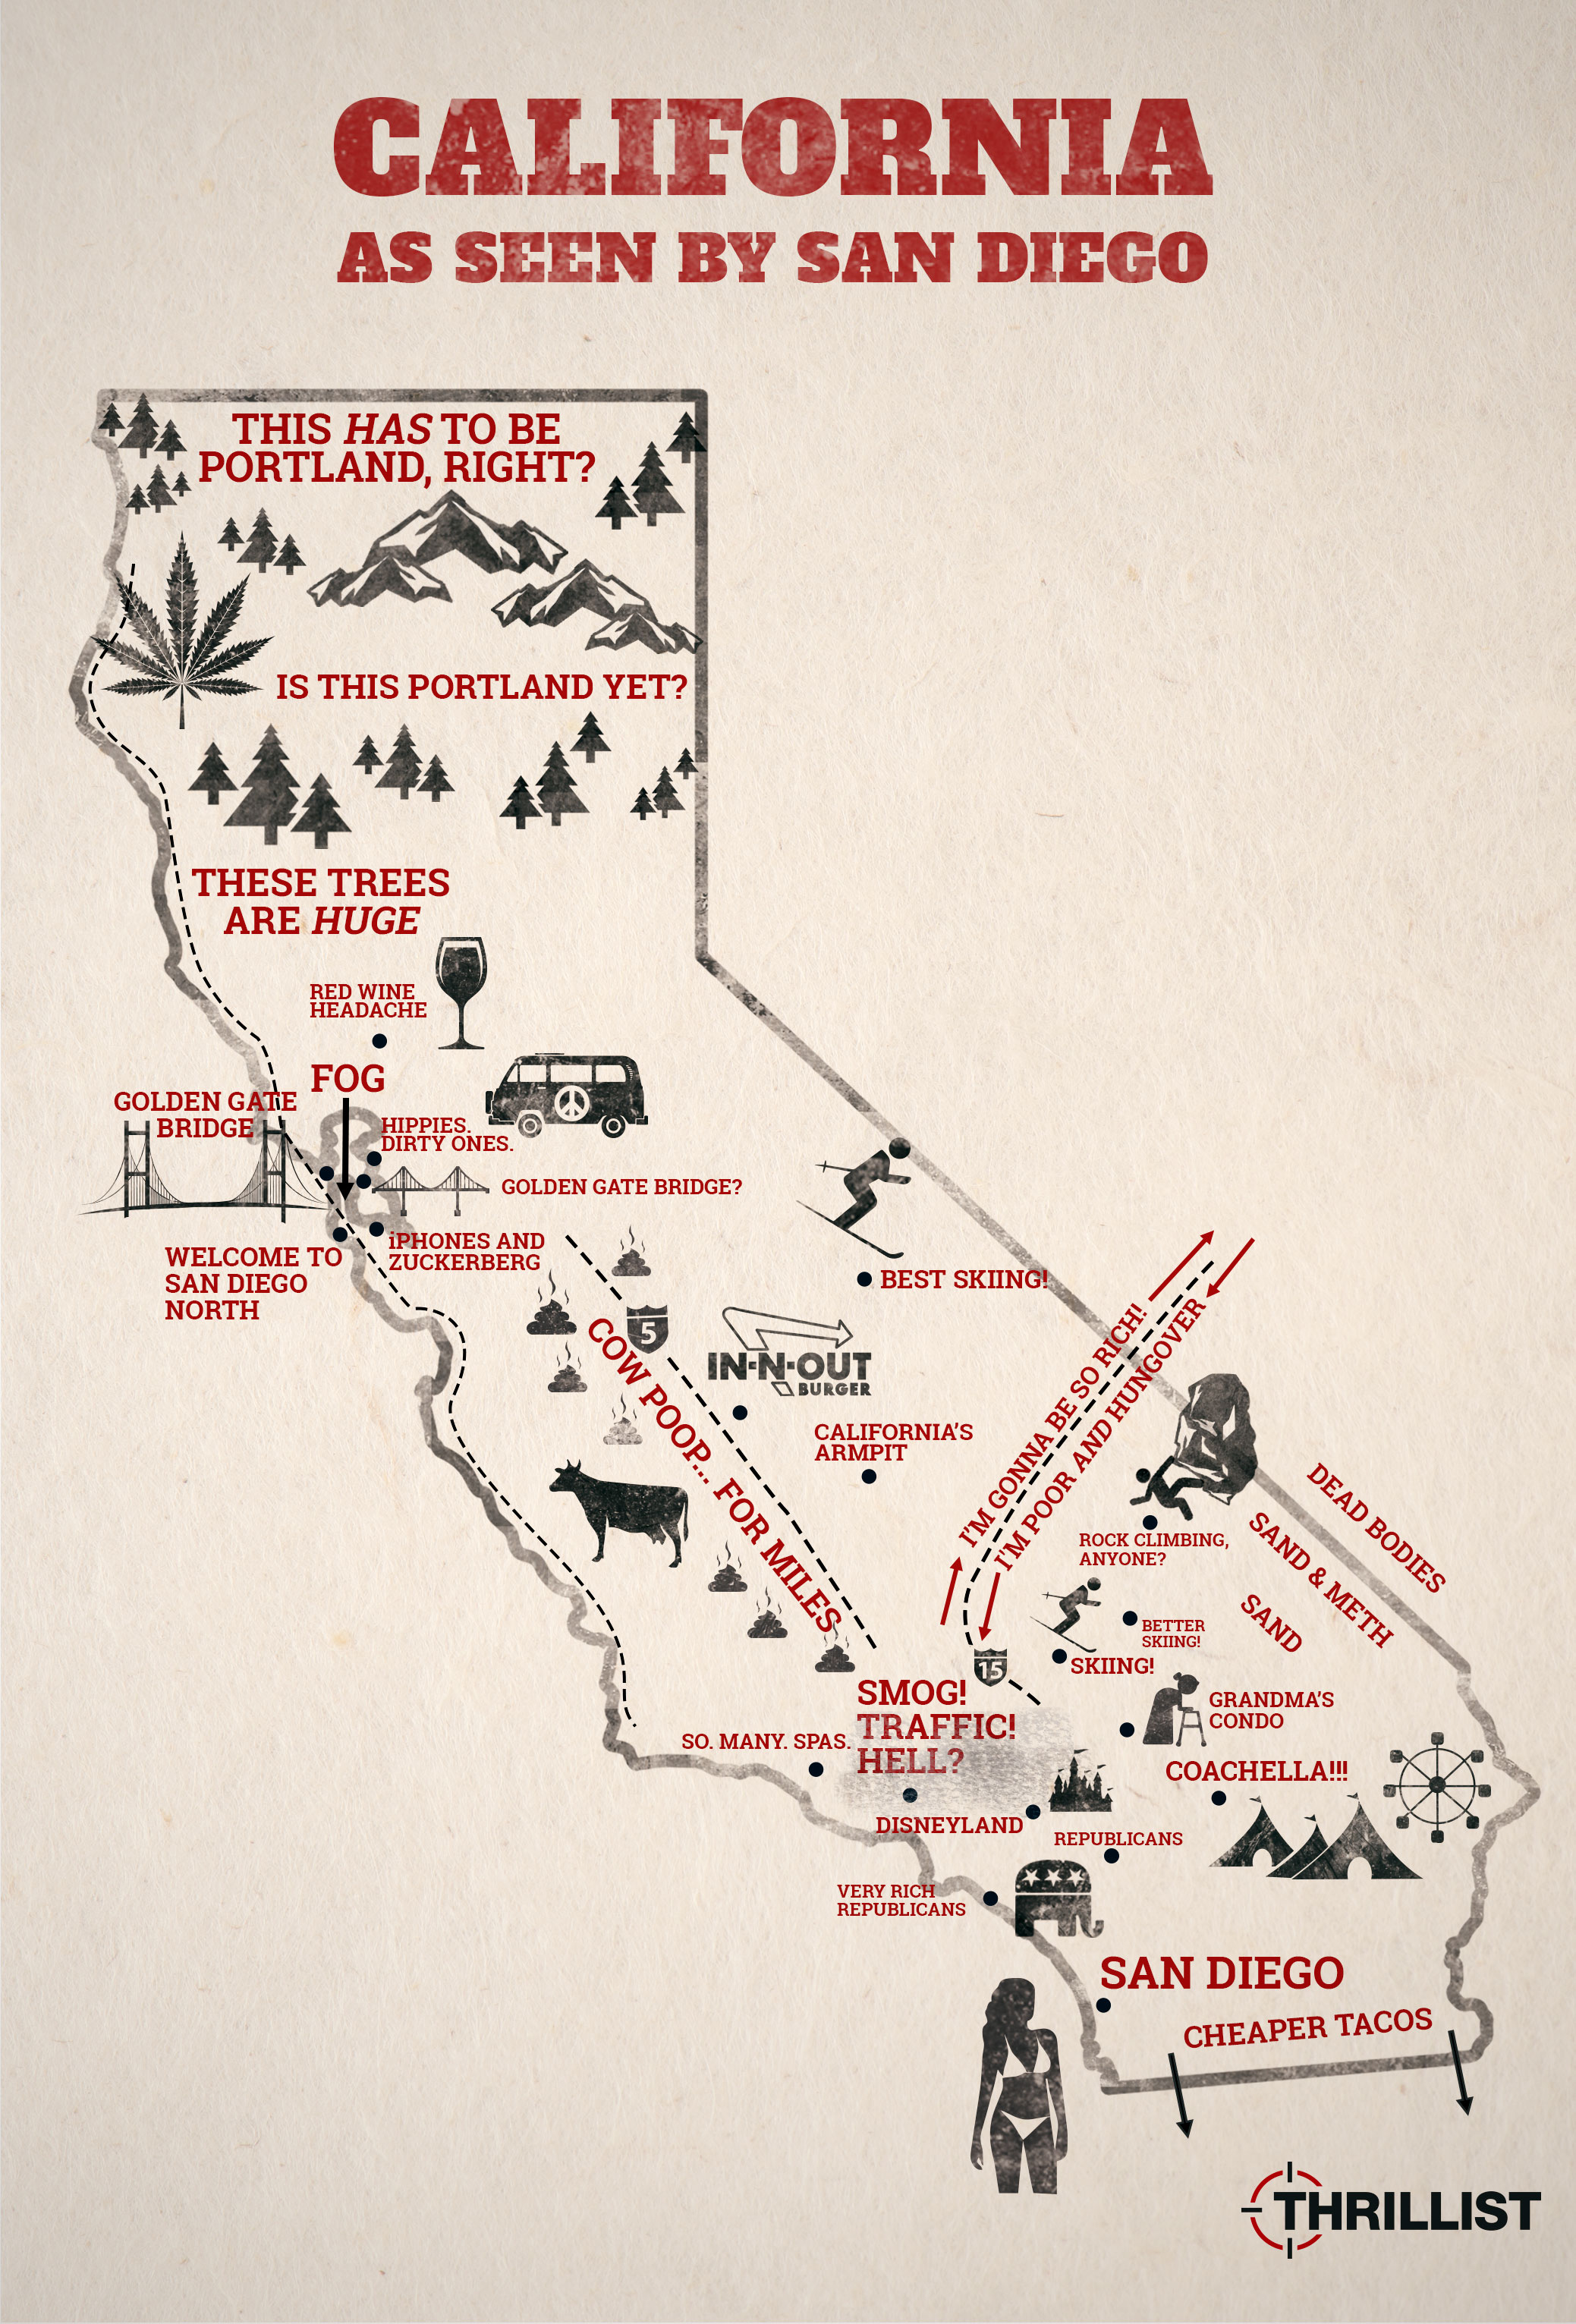 California According To San Diego  Thrillist